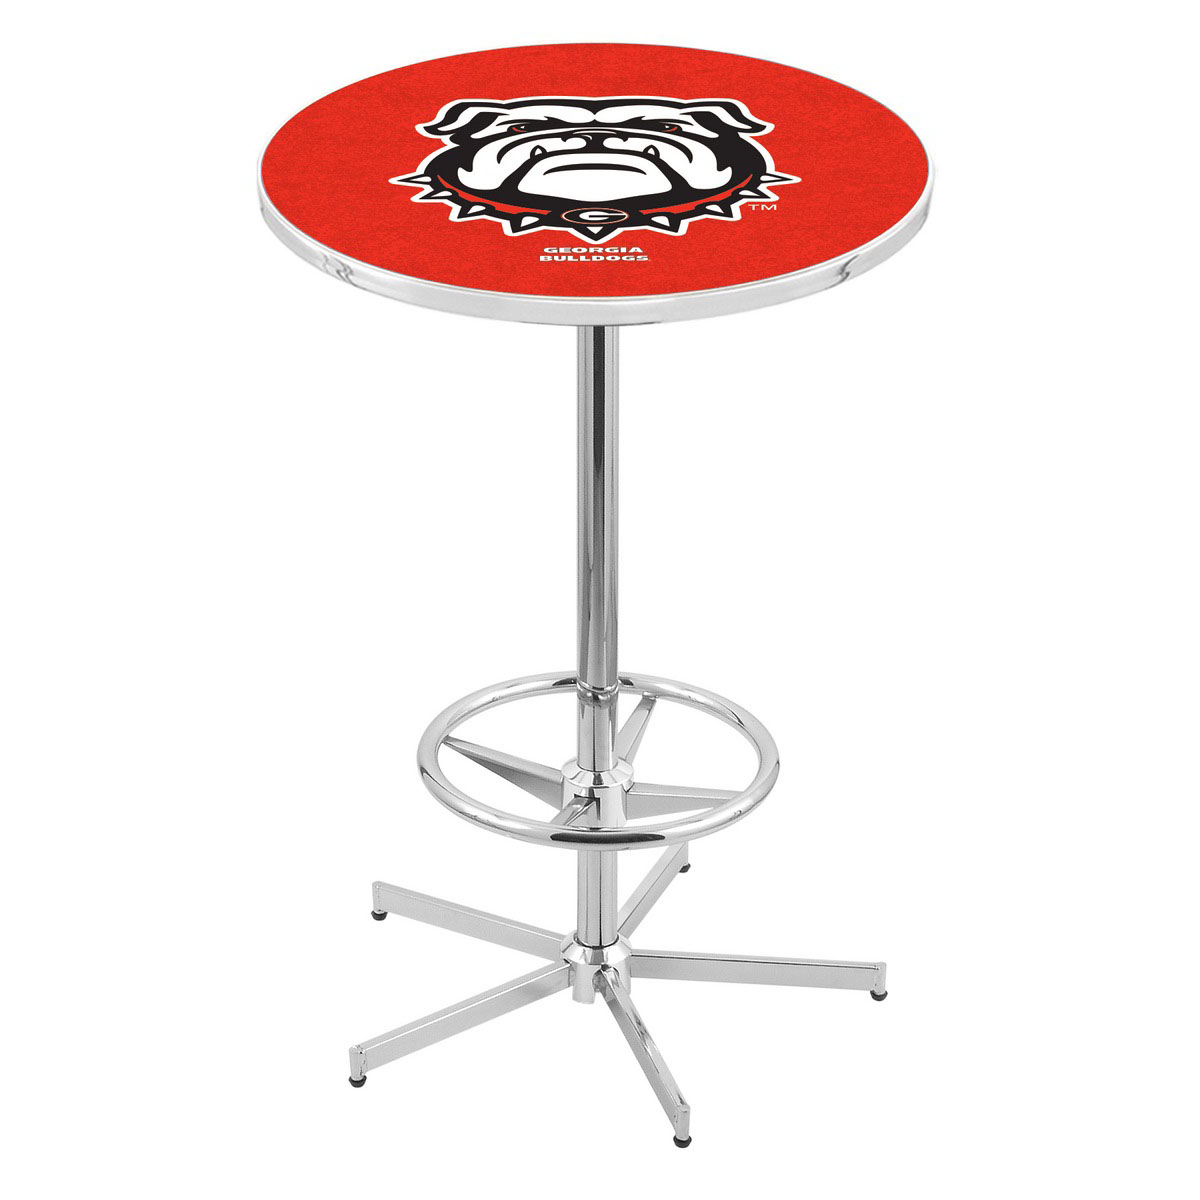 Amazing Chrome Georgia Bulldog Pub Table Product Photo